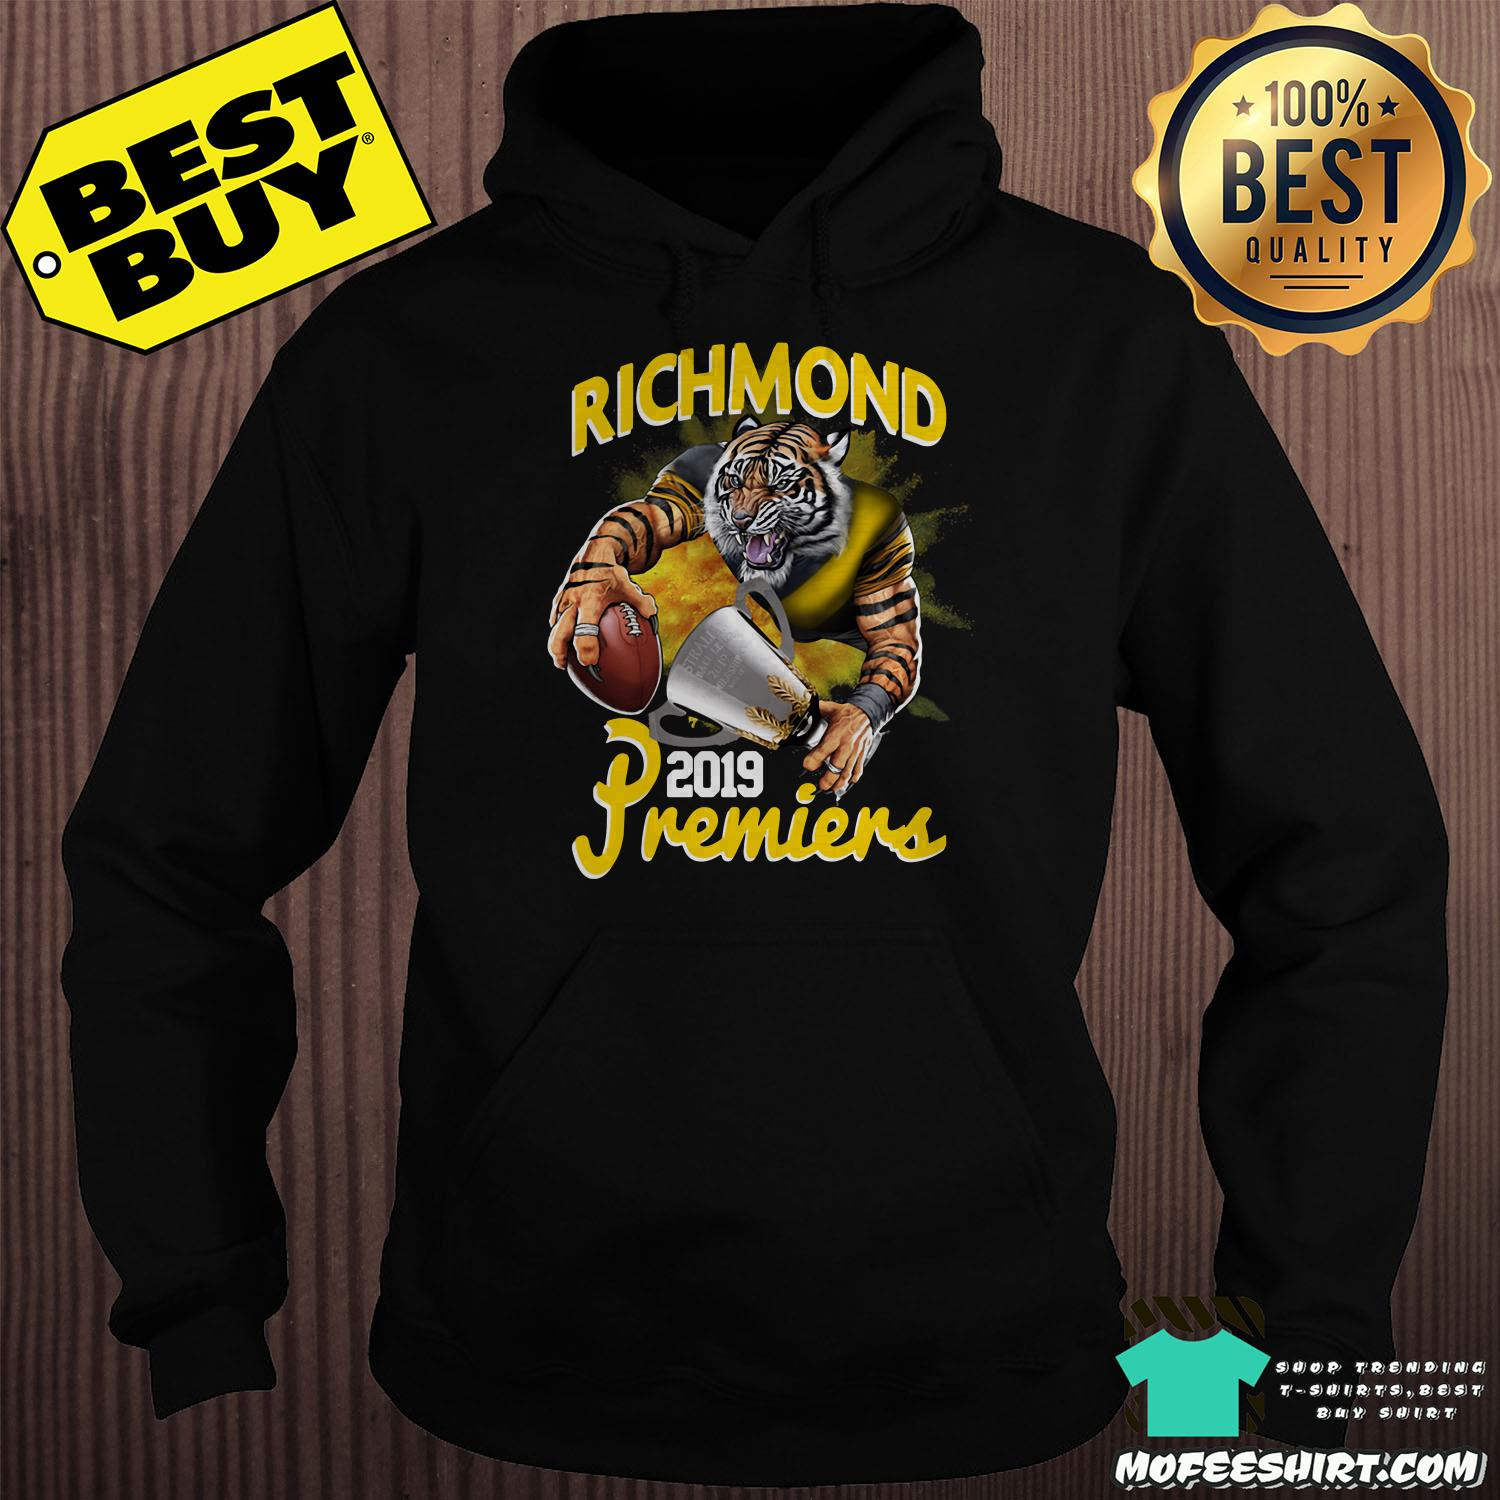 afl richmond tigers premiers 2019 hoodie - AFL Richmond Tigers Premiers 2019 shirt